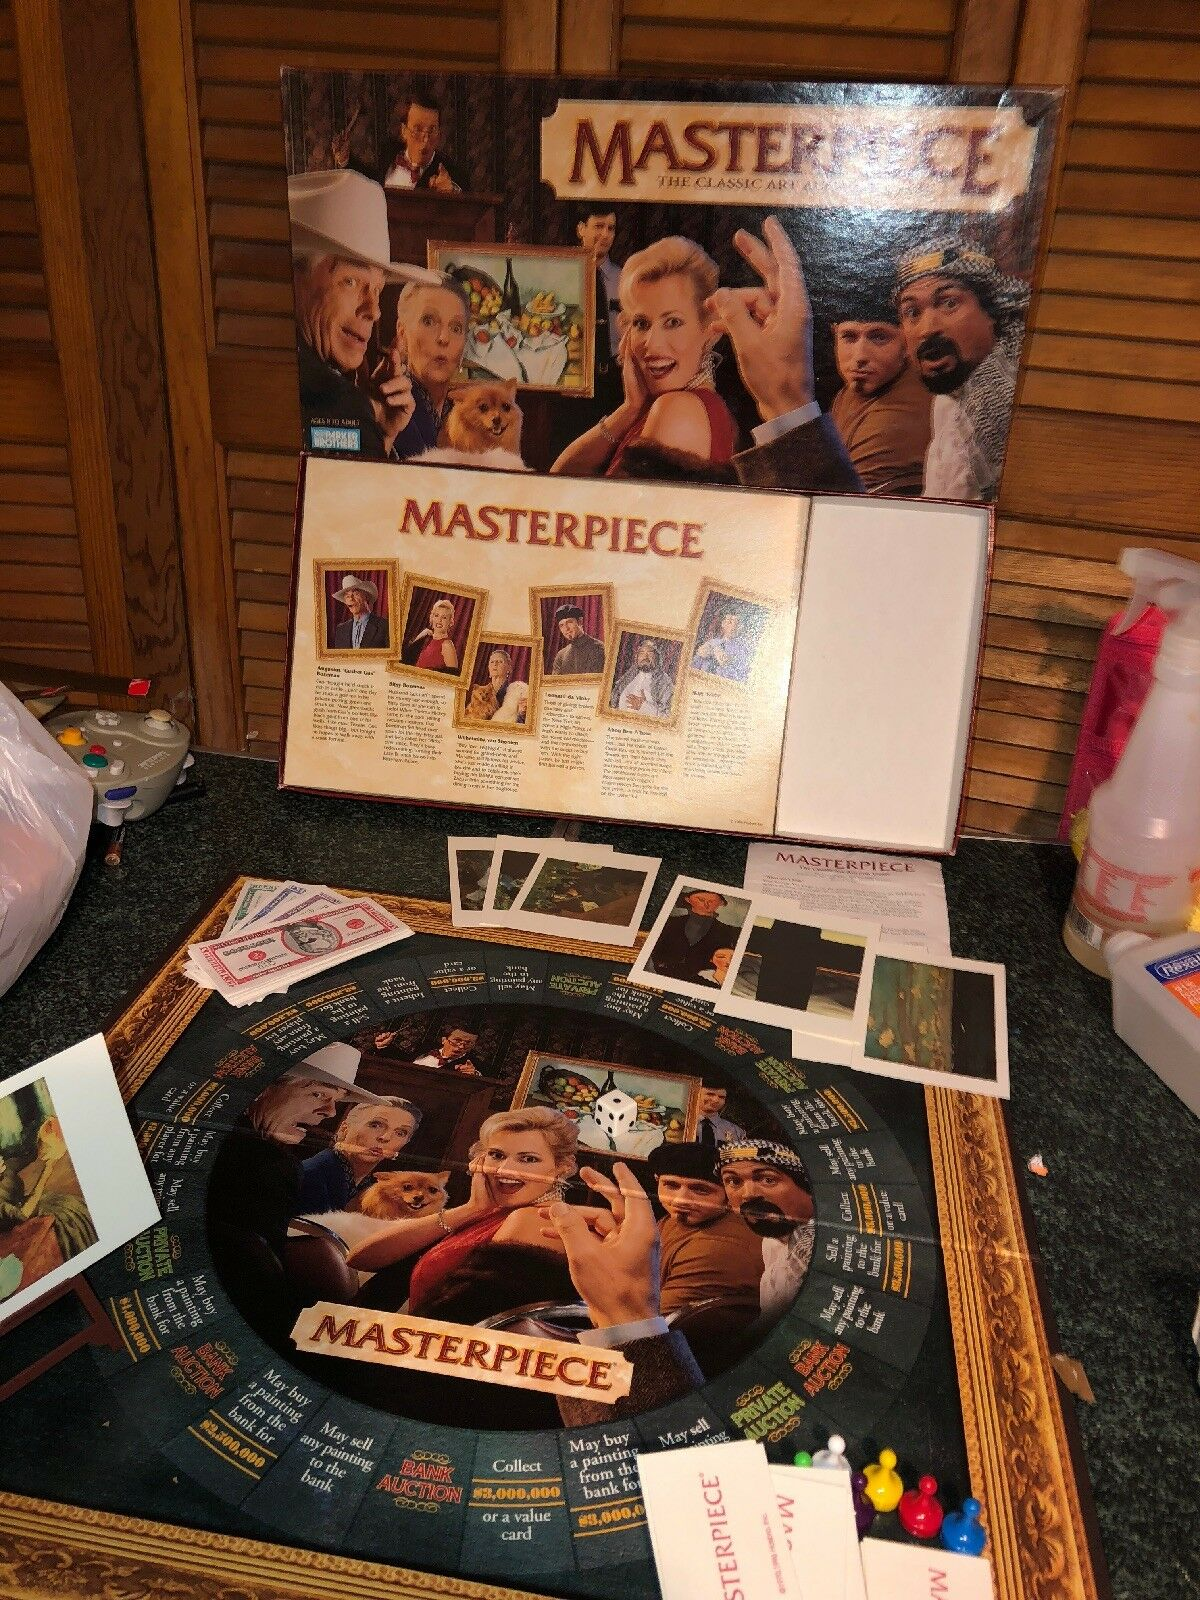 1996 Masterpiece The Classic Art Auction Game Parker Brothers - 100% COMPLETE